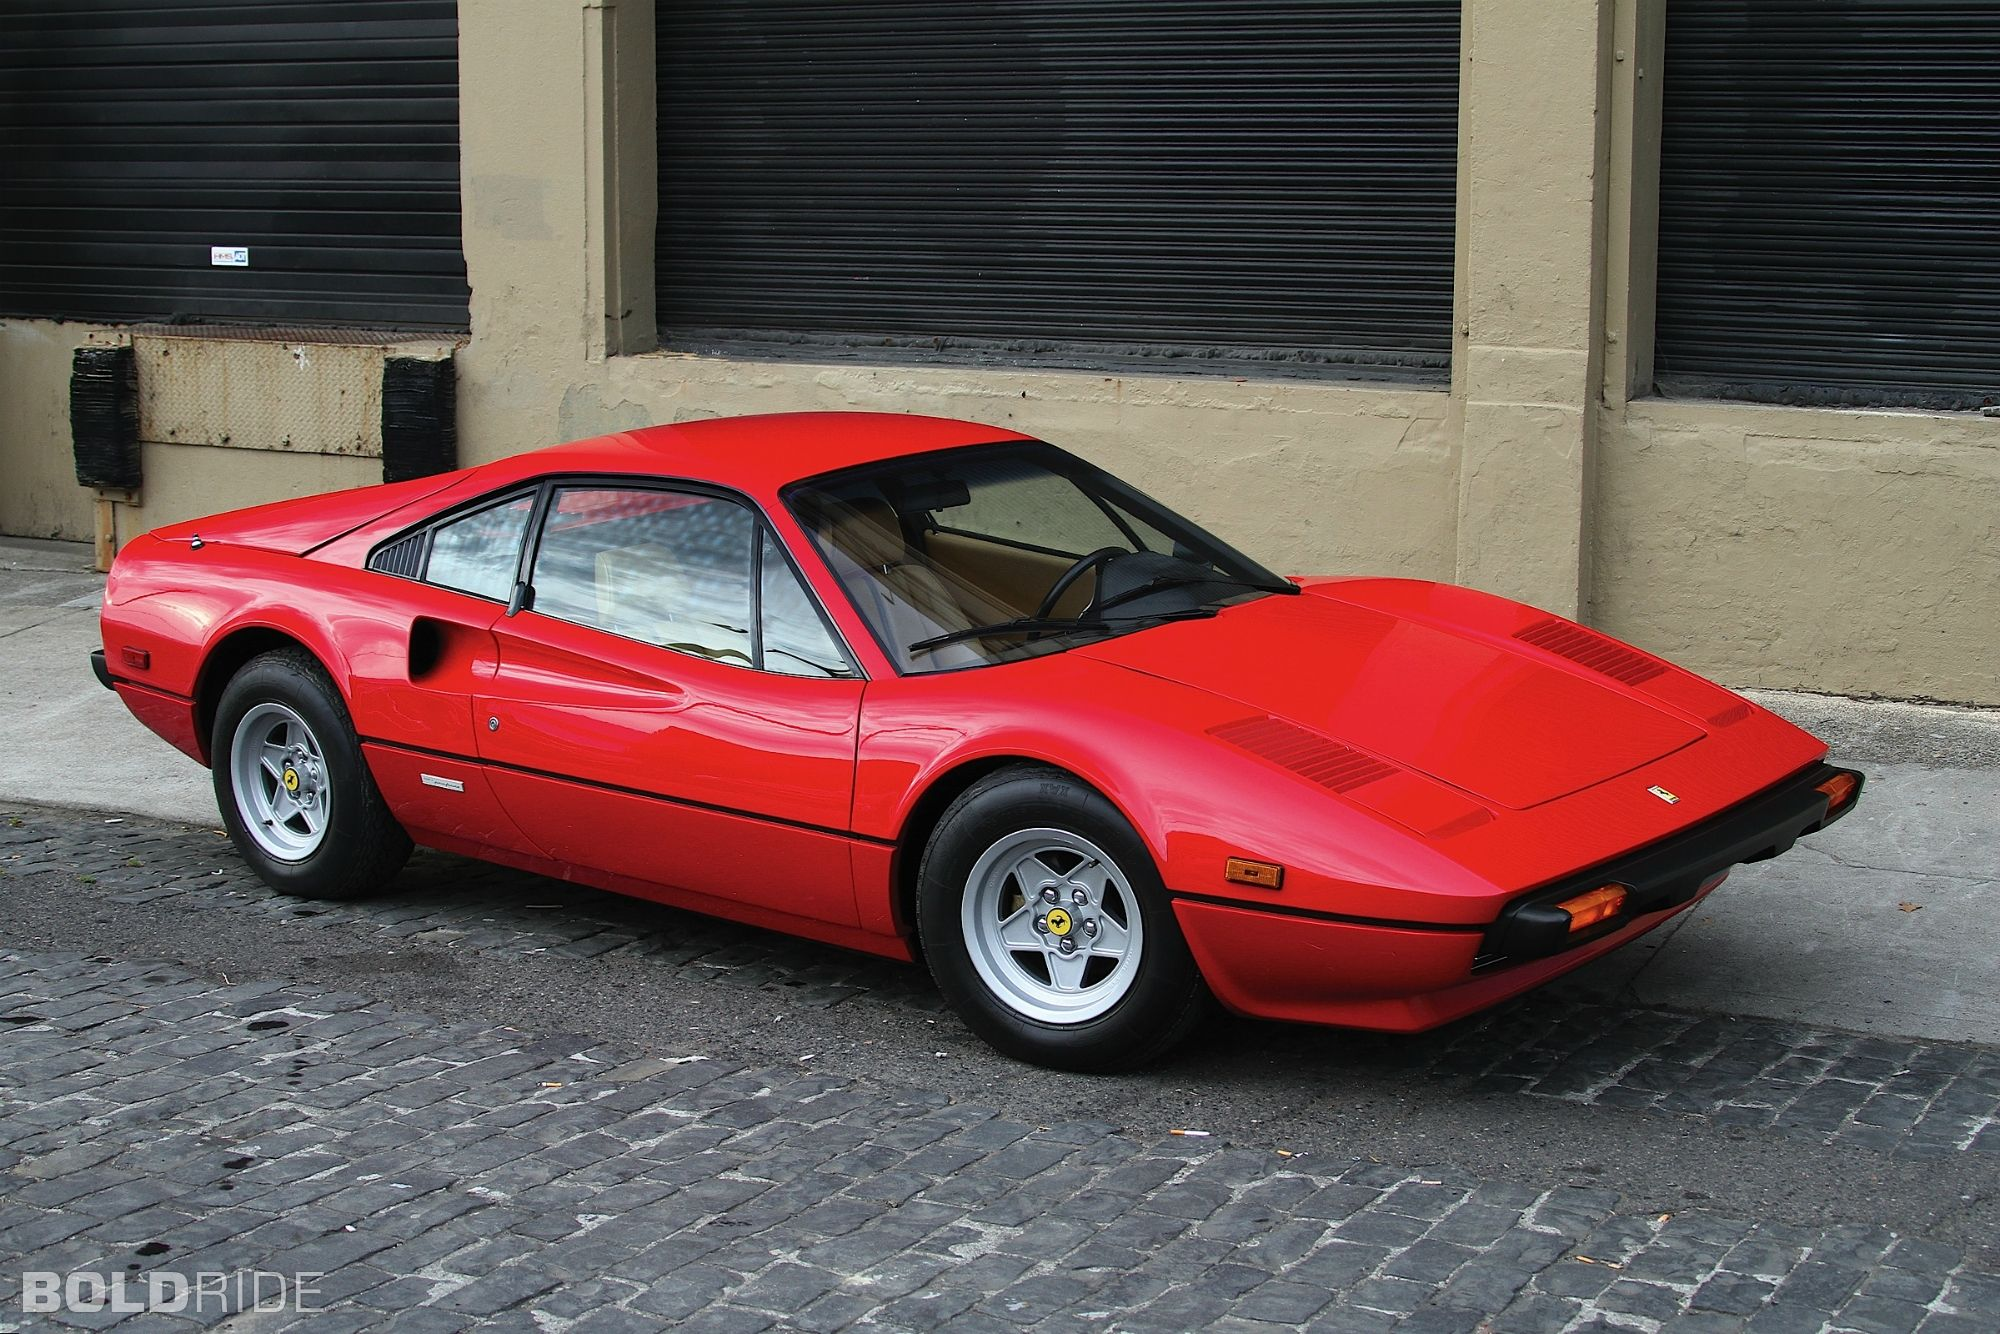 ferrari 308 gtb ferrari cars and car buying guide. Black Bedroom Furniture Sets. Home Design Ideas